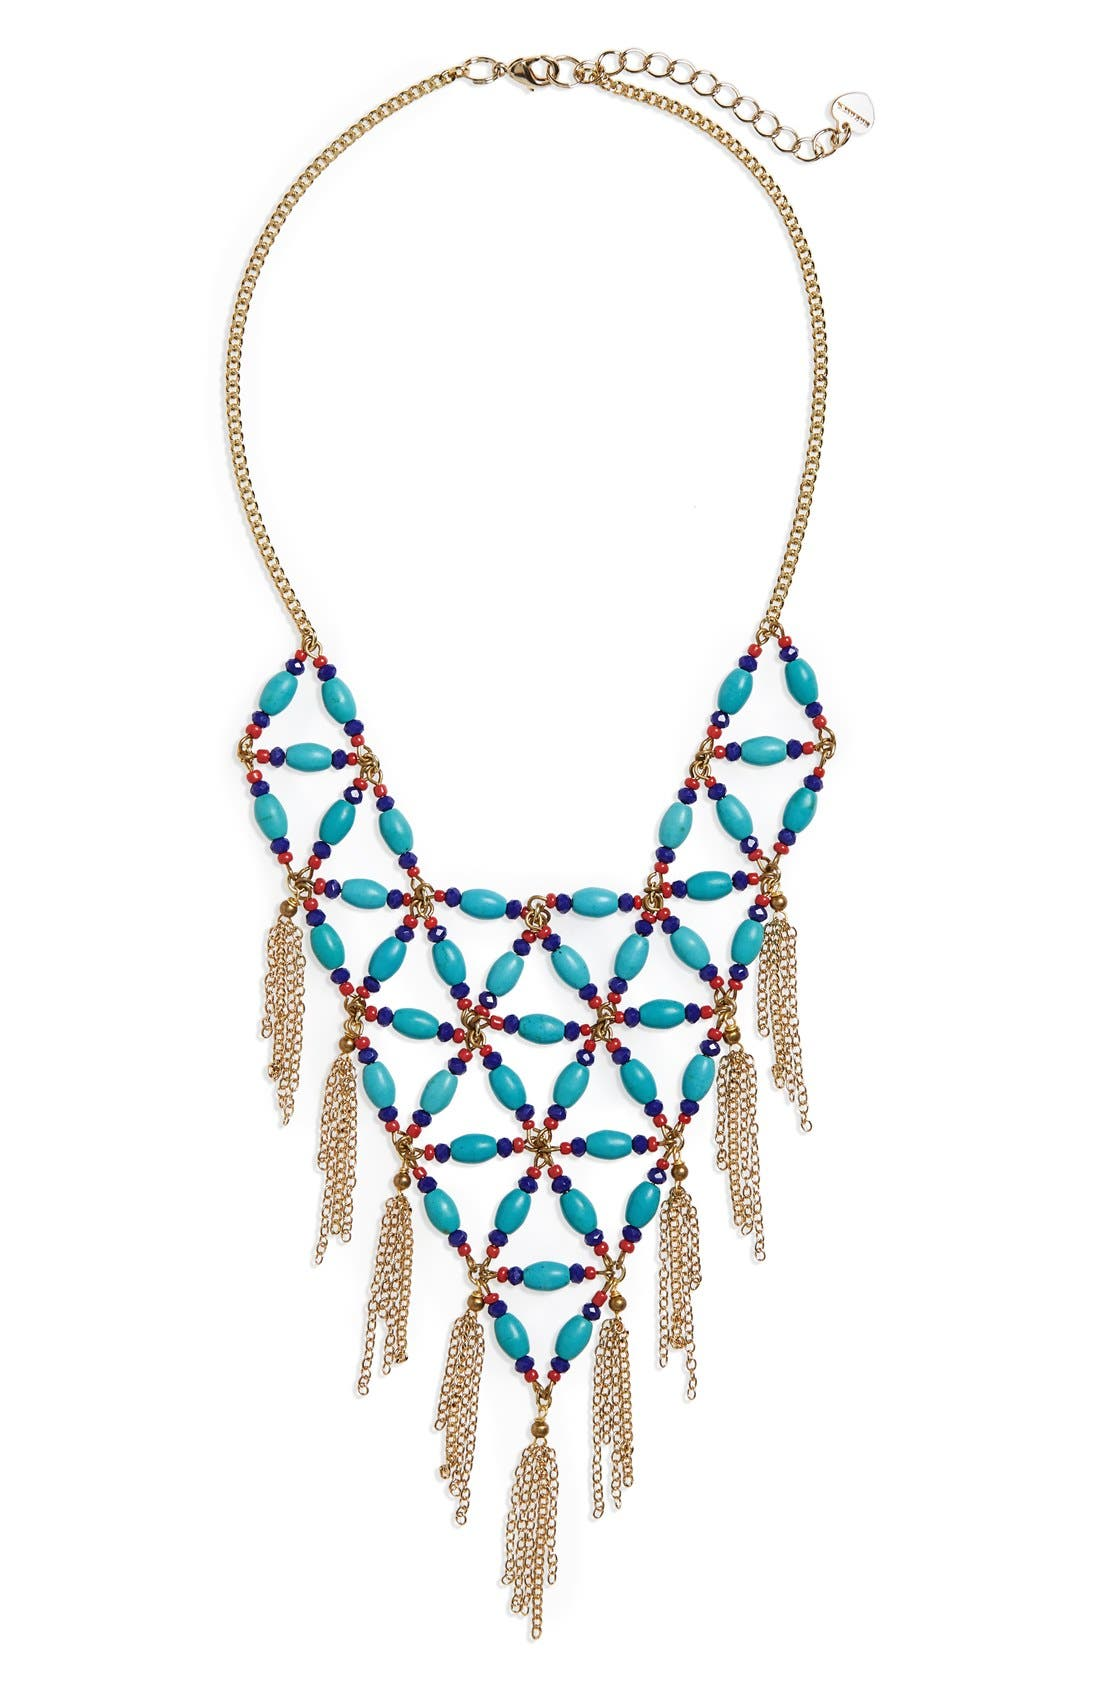 Main Image - Nakamol Design Beaded Statement Necklace